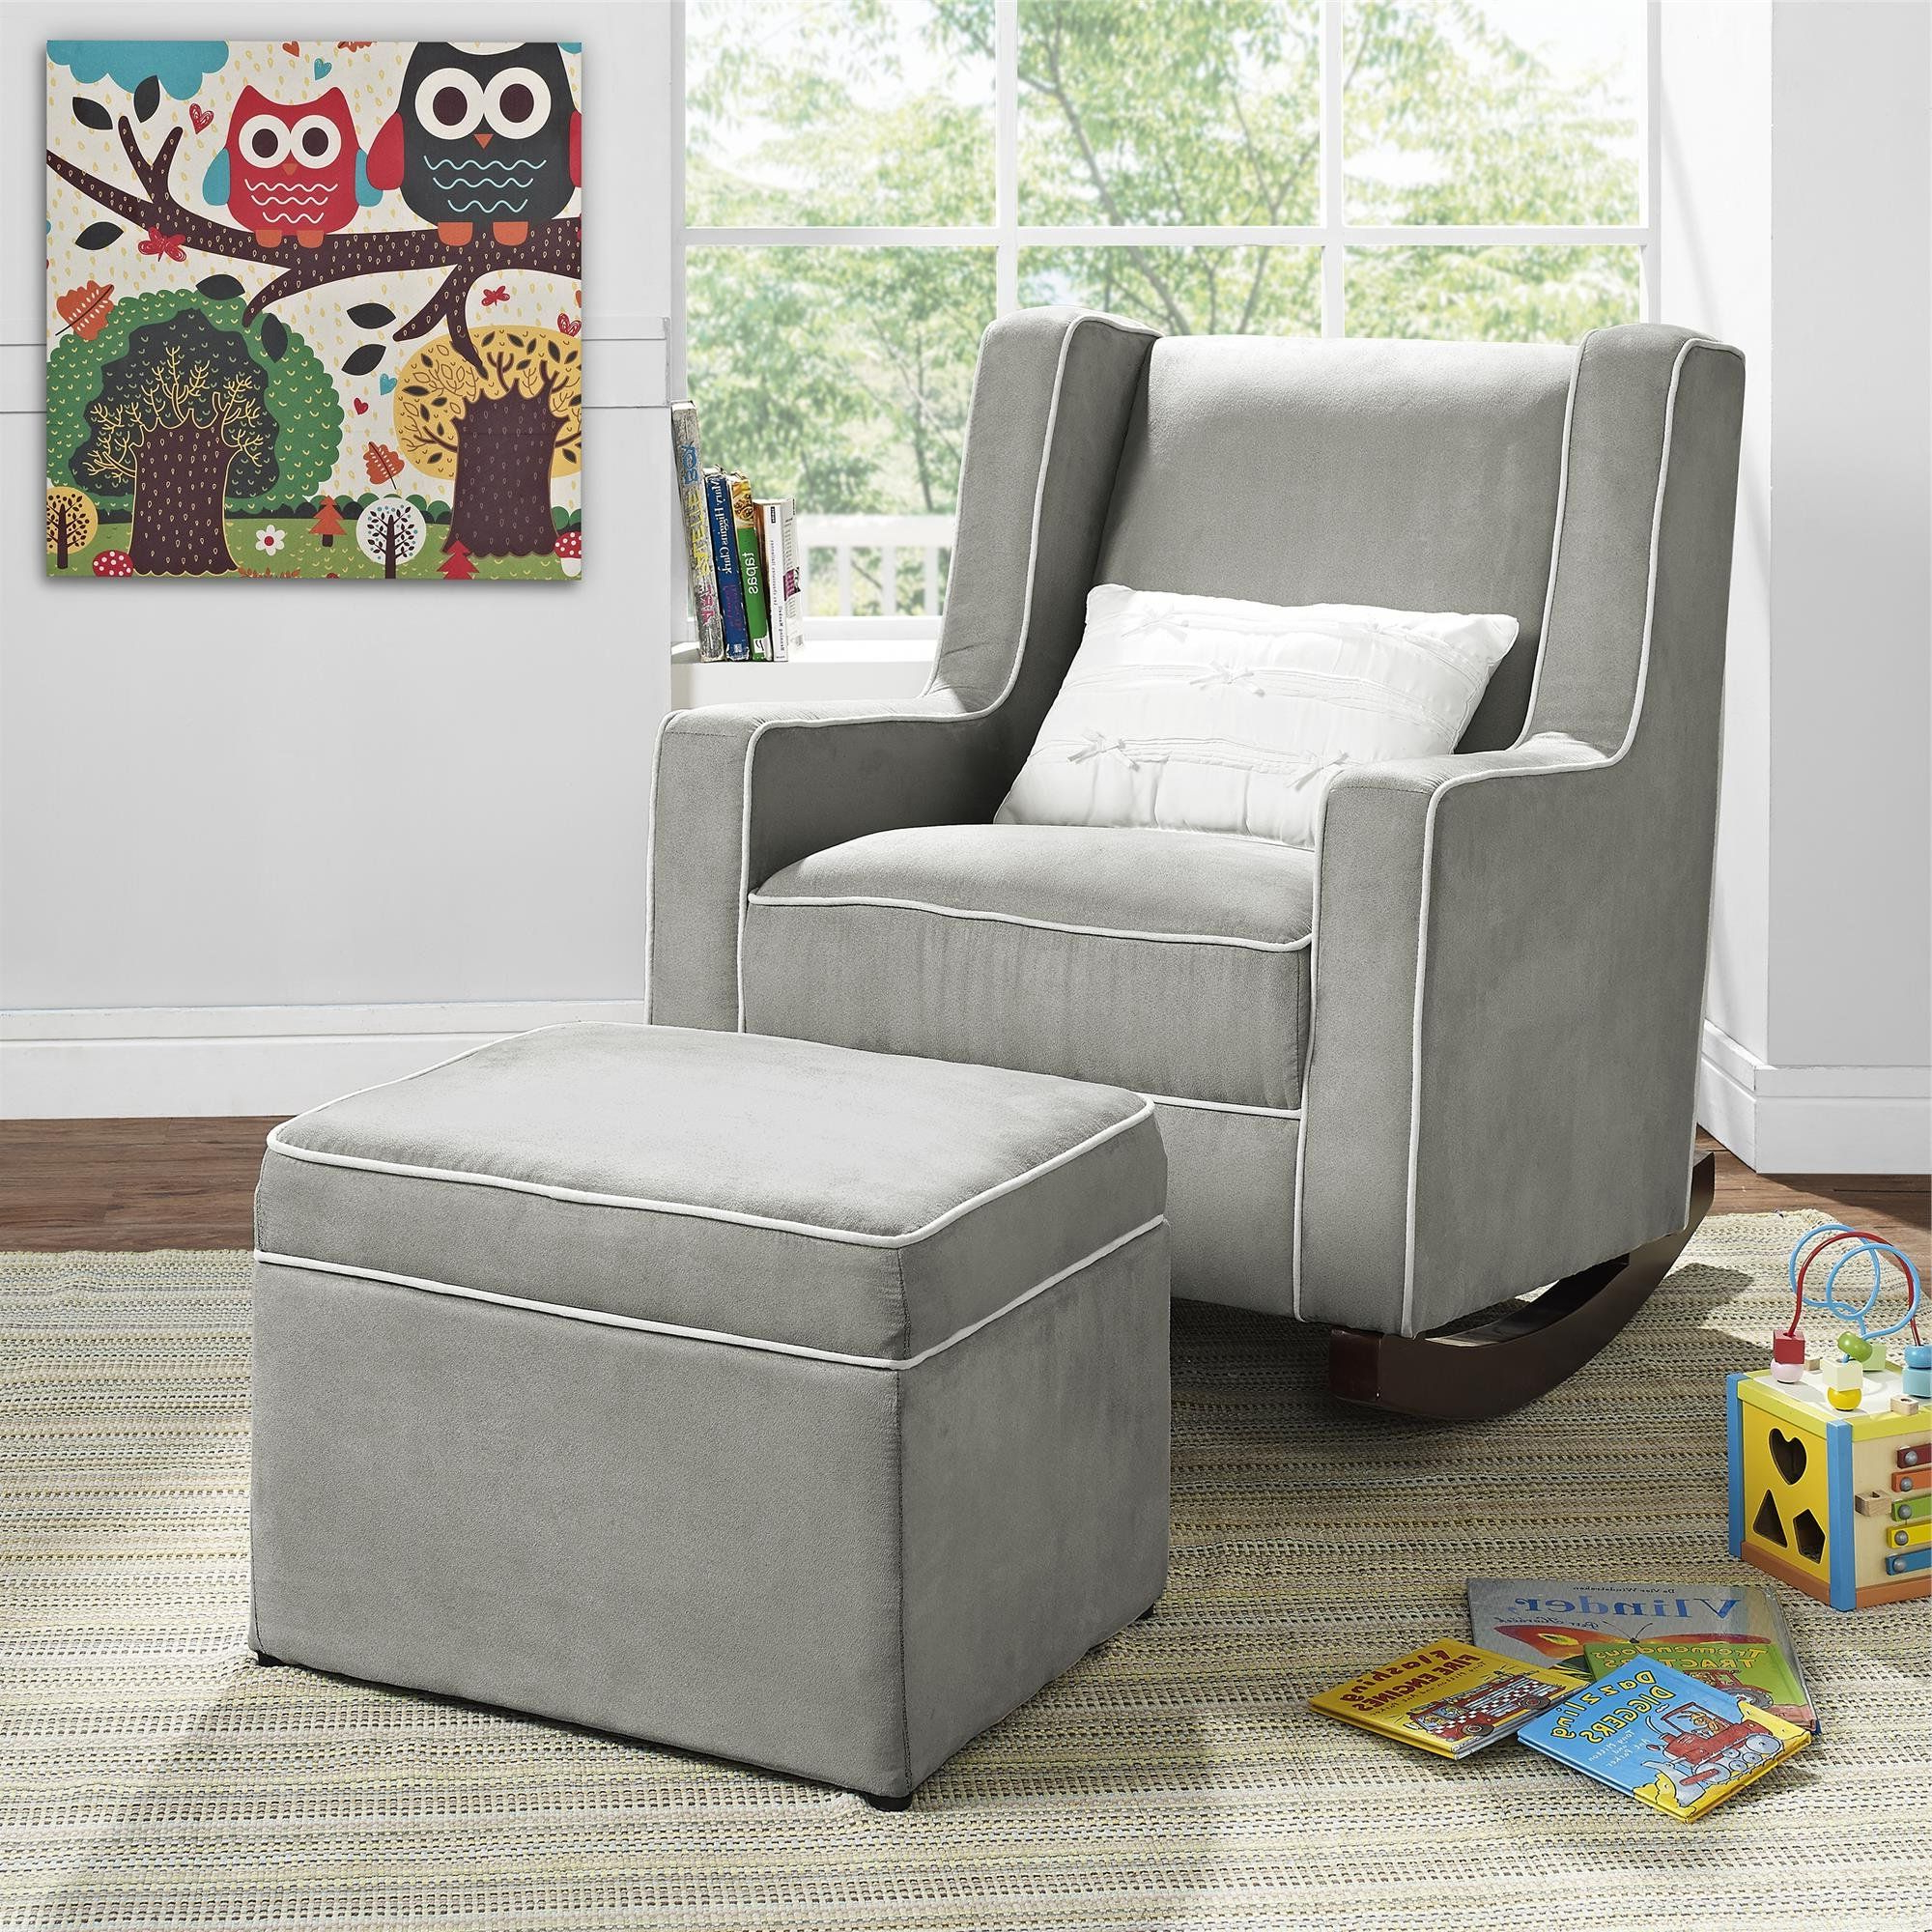 Well Liked Baby Relax Abby Rocker Gray Color: One Color >>> Check Out This Throughout Abbey Swivel Glider Recliners (Gallery 11 of 20)